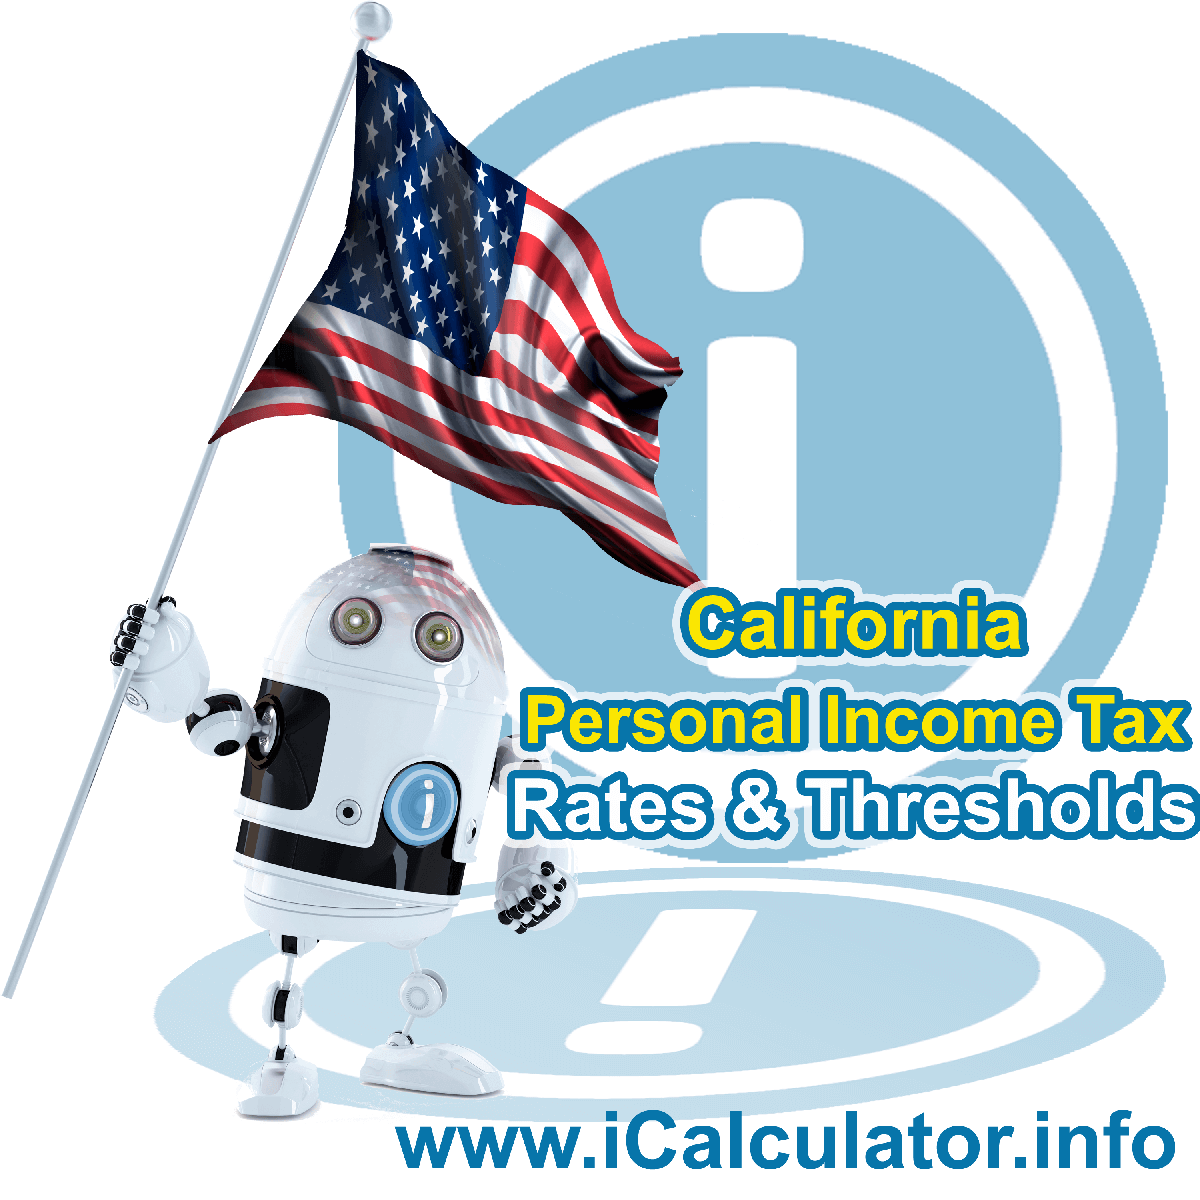 California State Tax Tables 2018. This image displays details of the California State Tax Tables for the 2018 tax return year which is provided in support of the 2018 US Tax Calculator